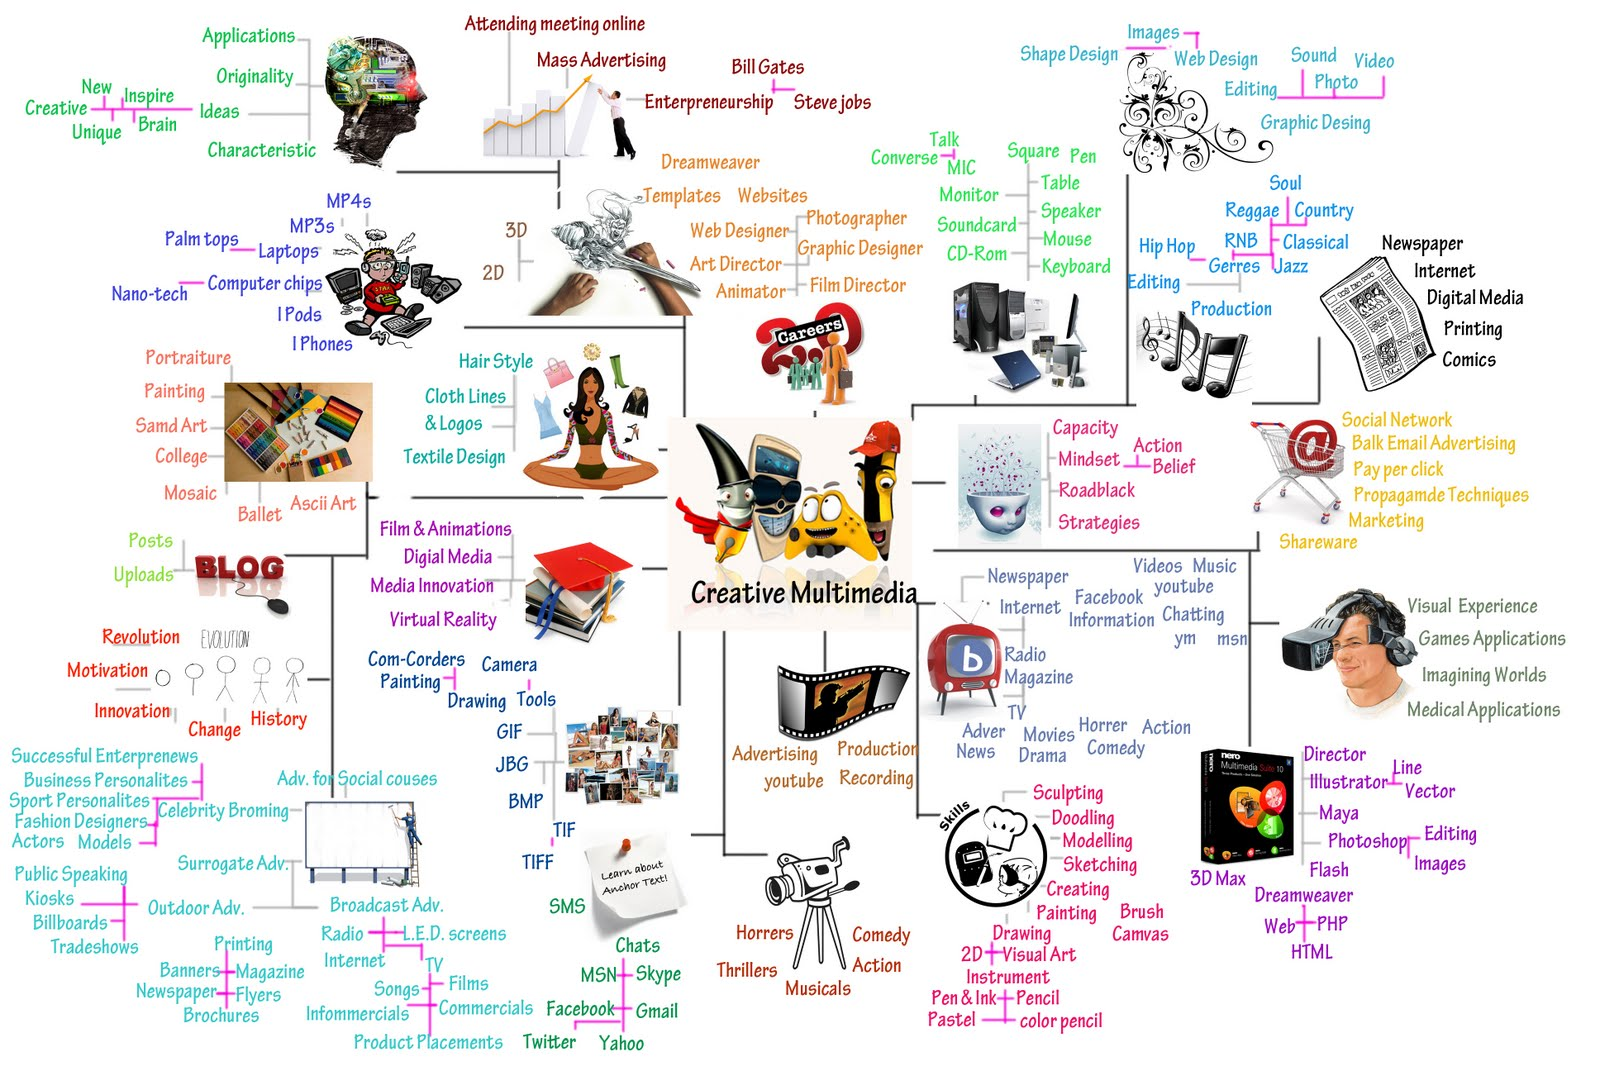 we had been asking to create a mind map about us below is mind map about myself by using photoshop